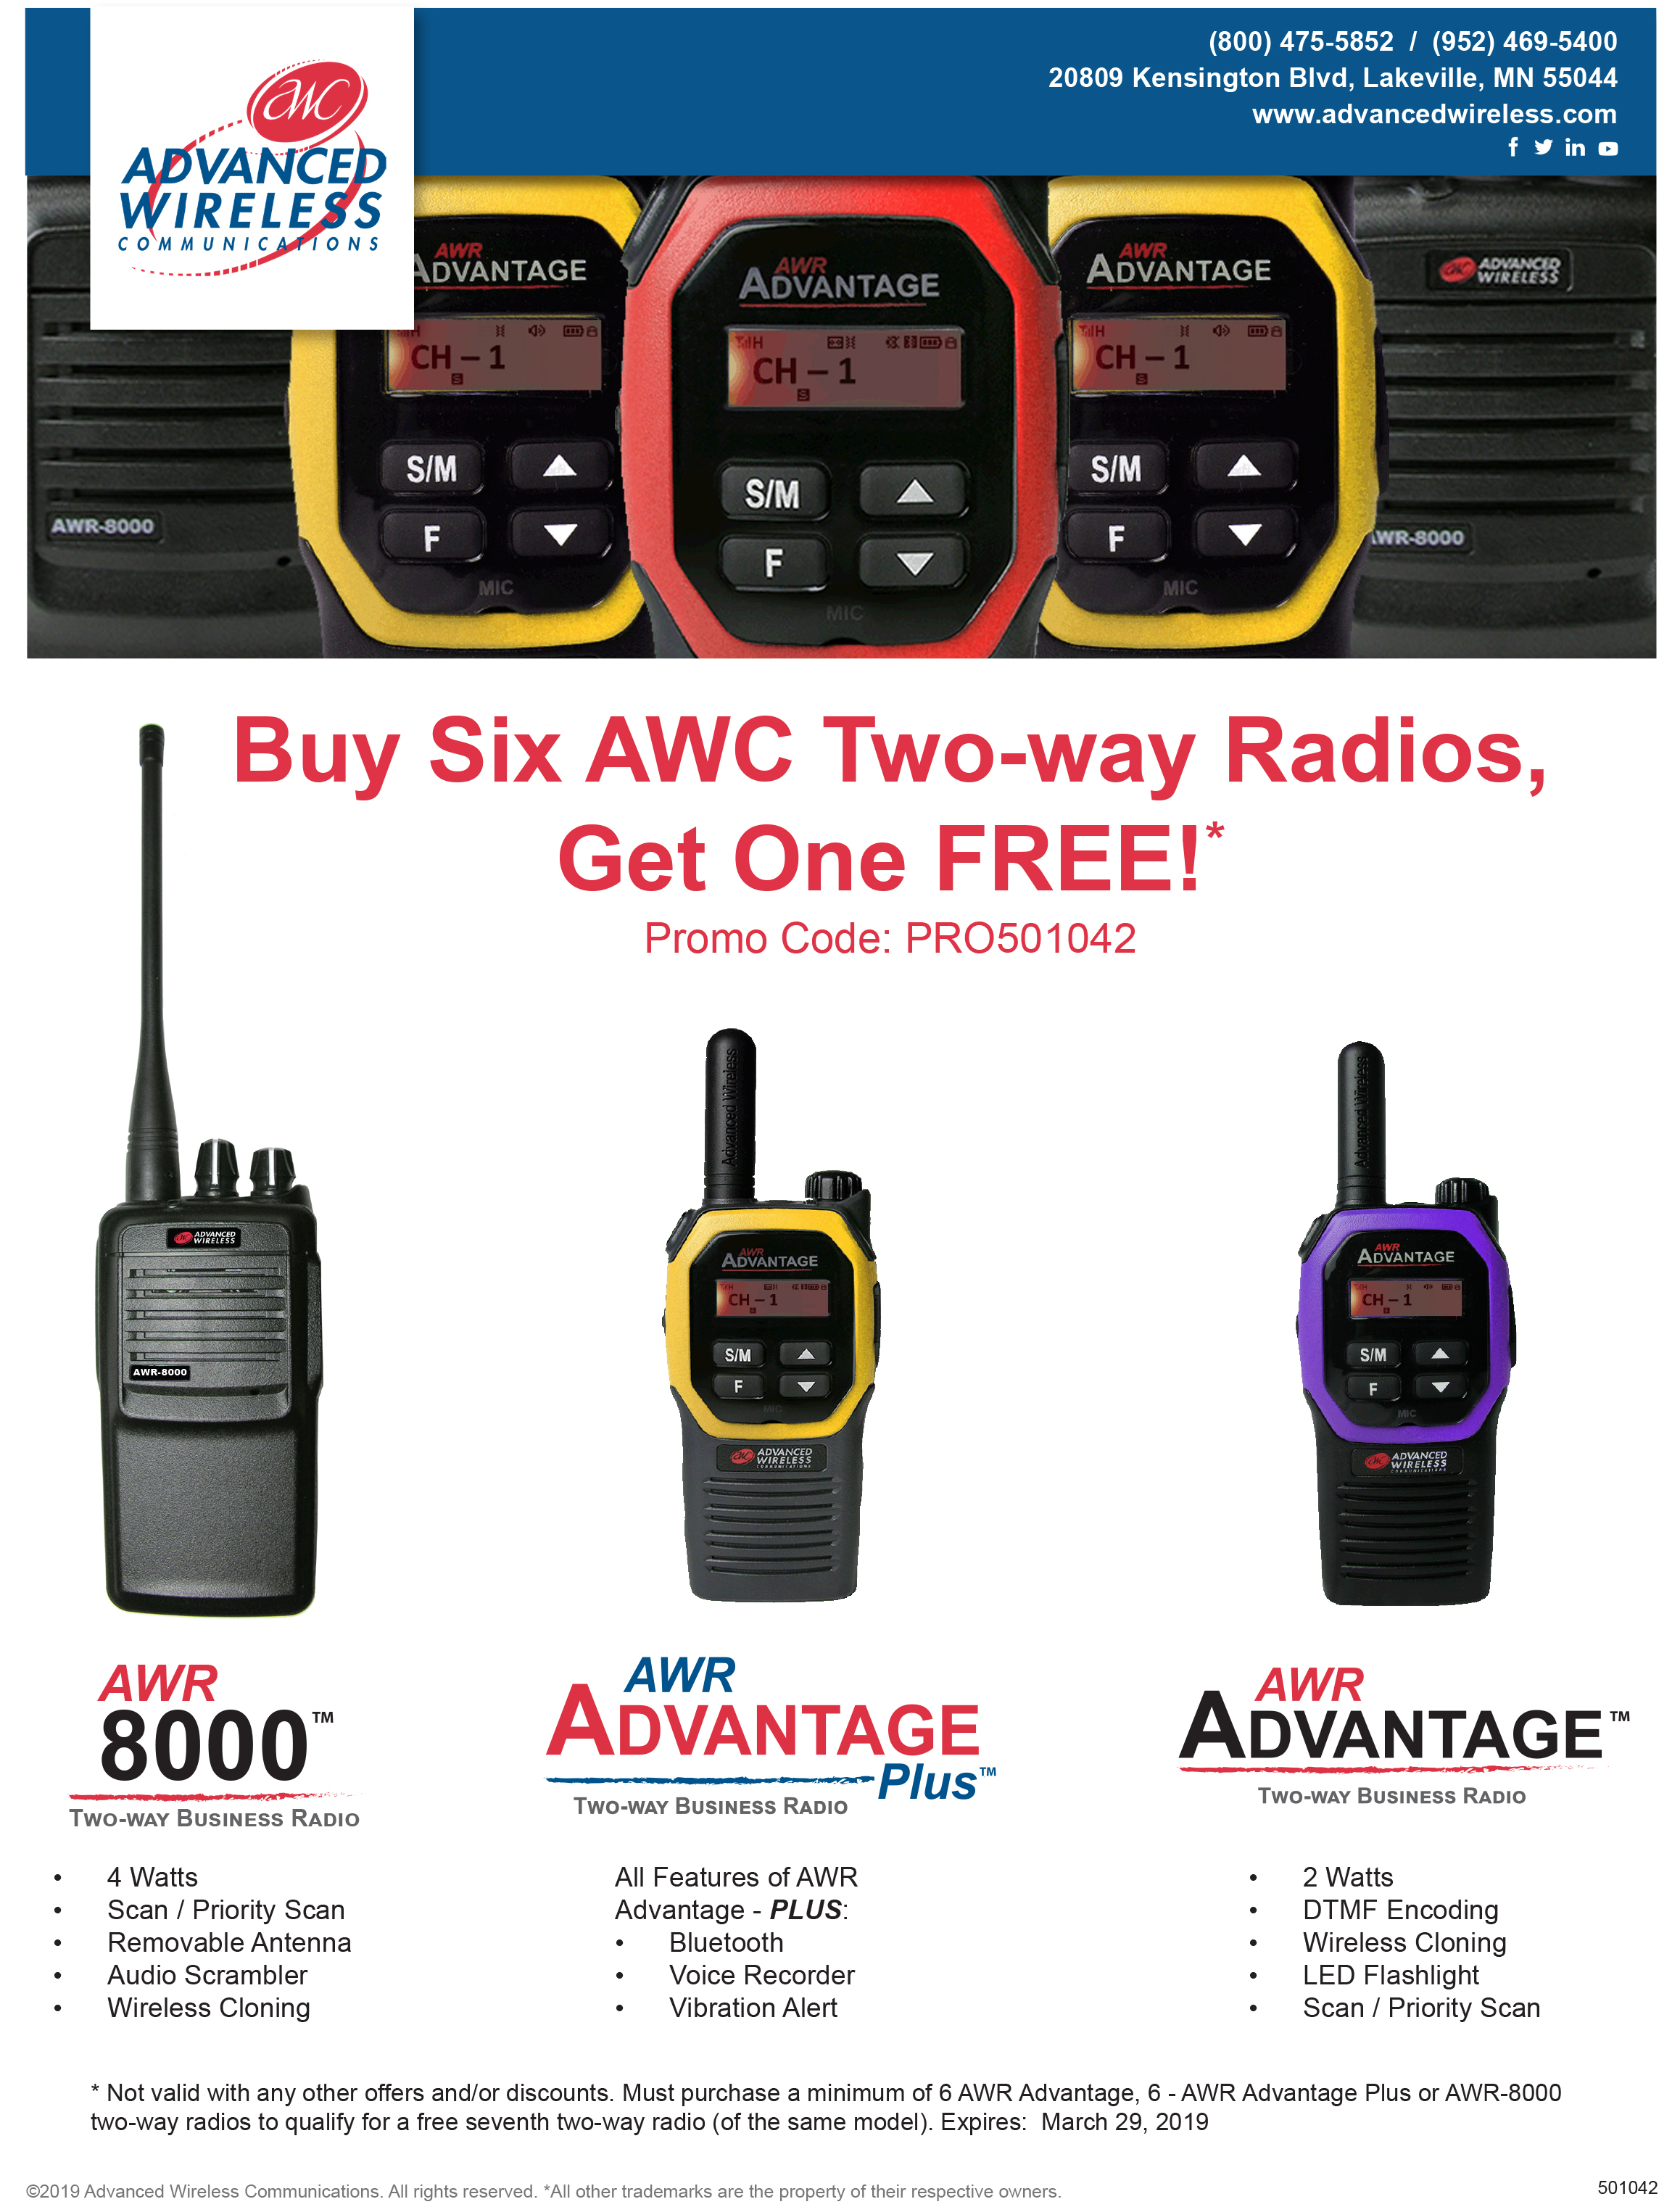 Radio Promotion By Advanced Wireless